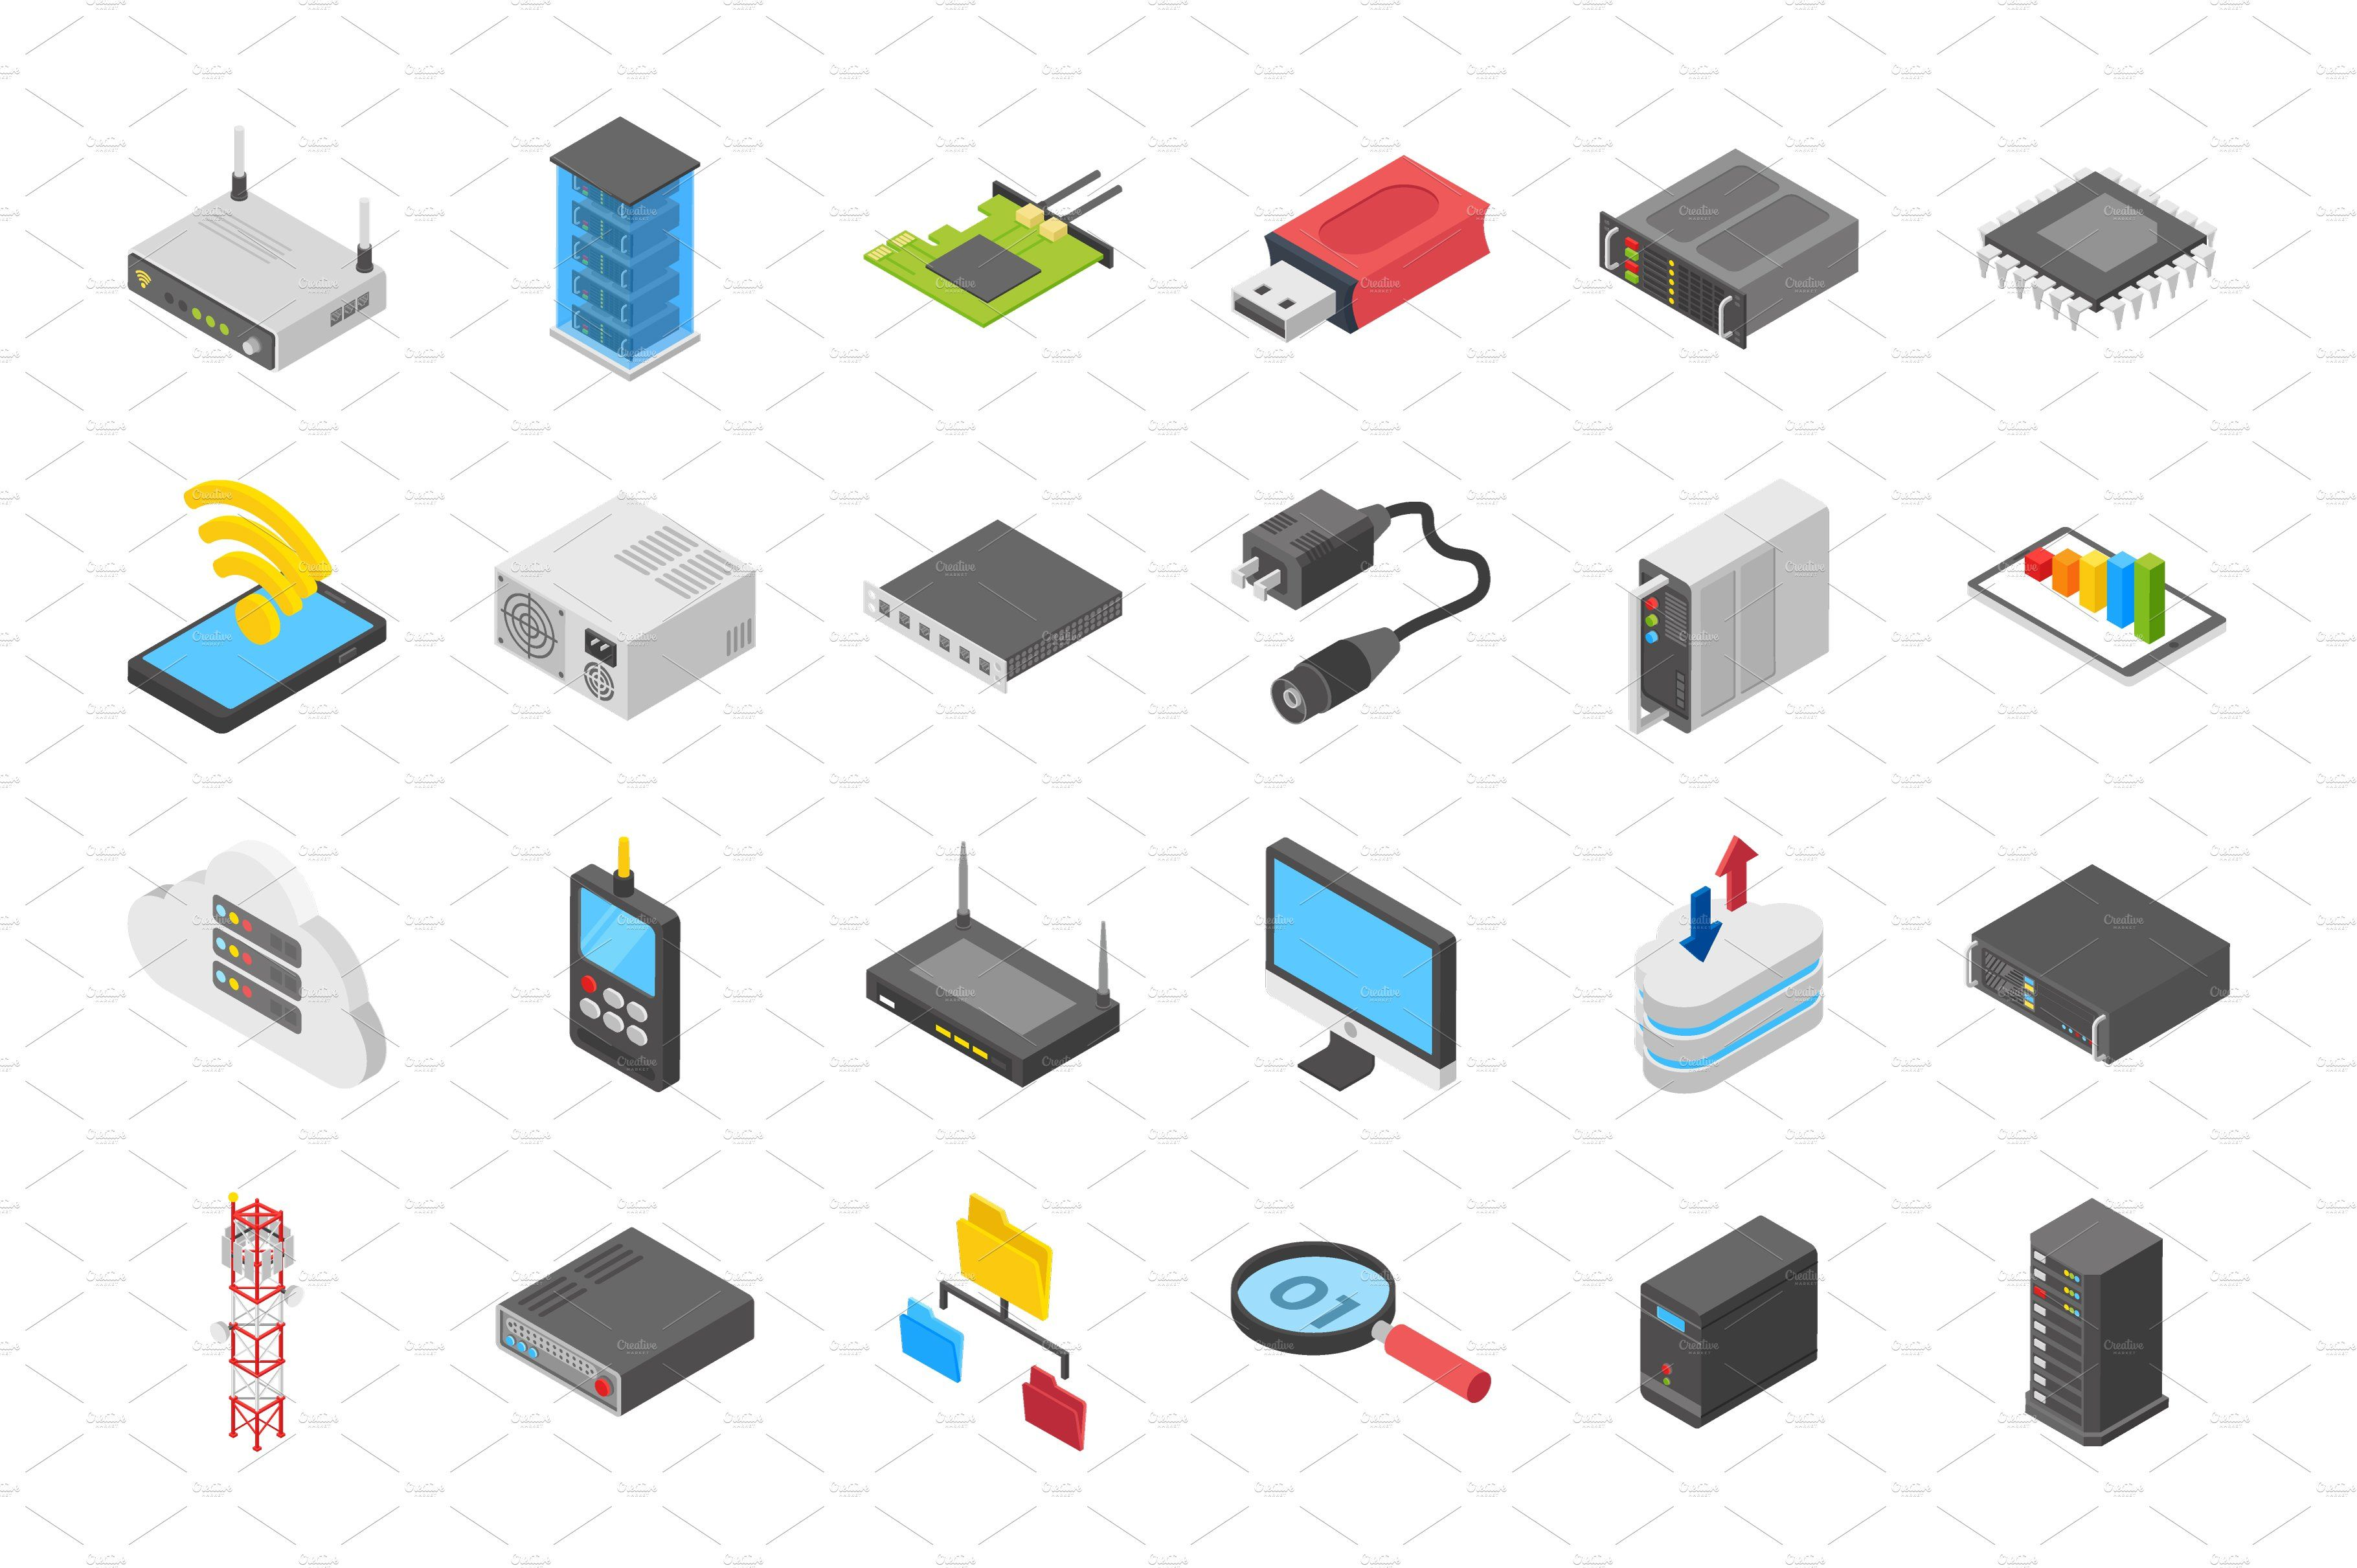 60 Networking Isometric Icons Network Icon Isometric Networking